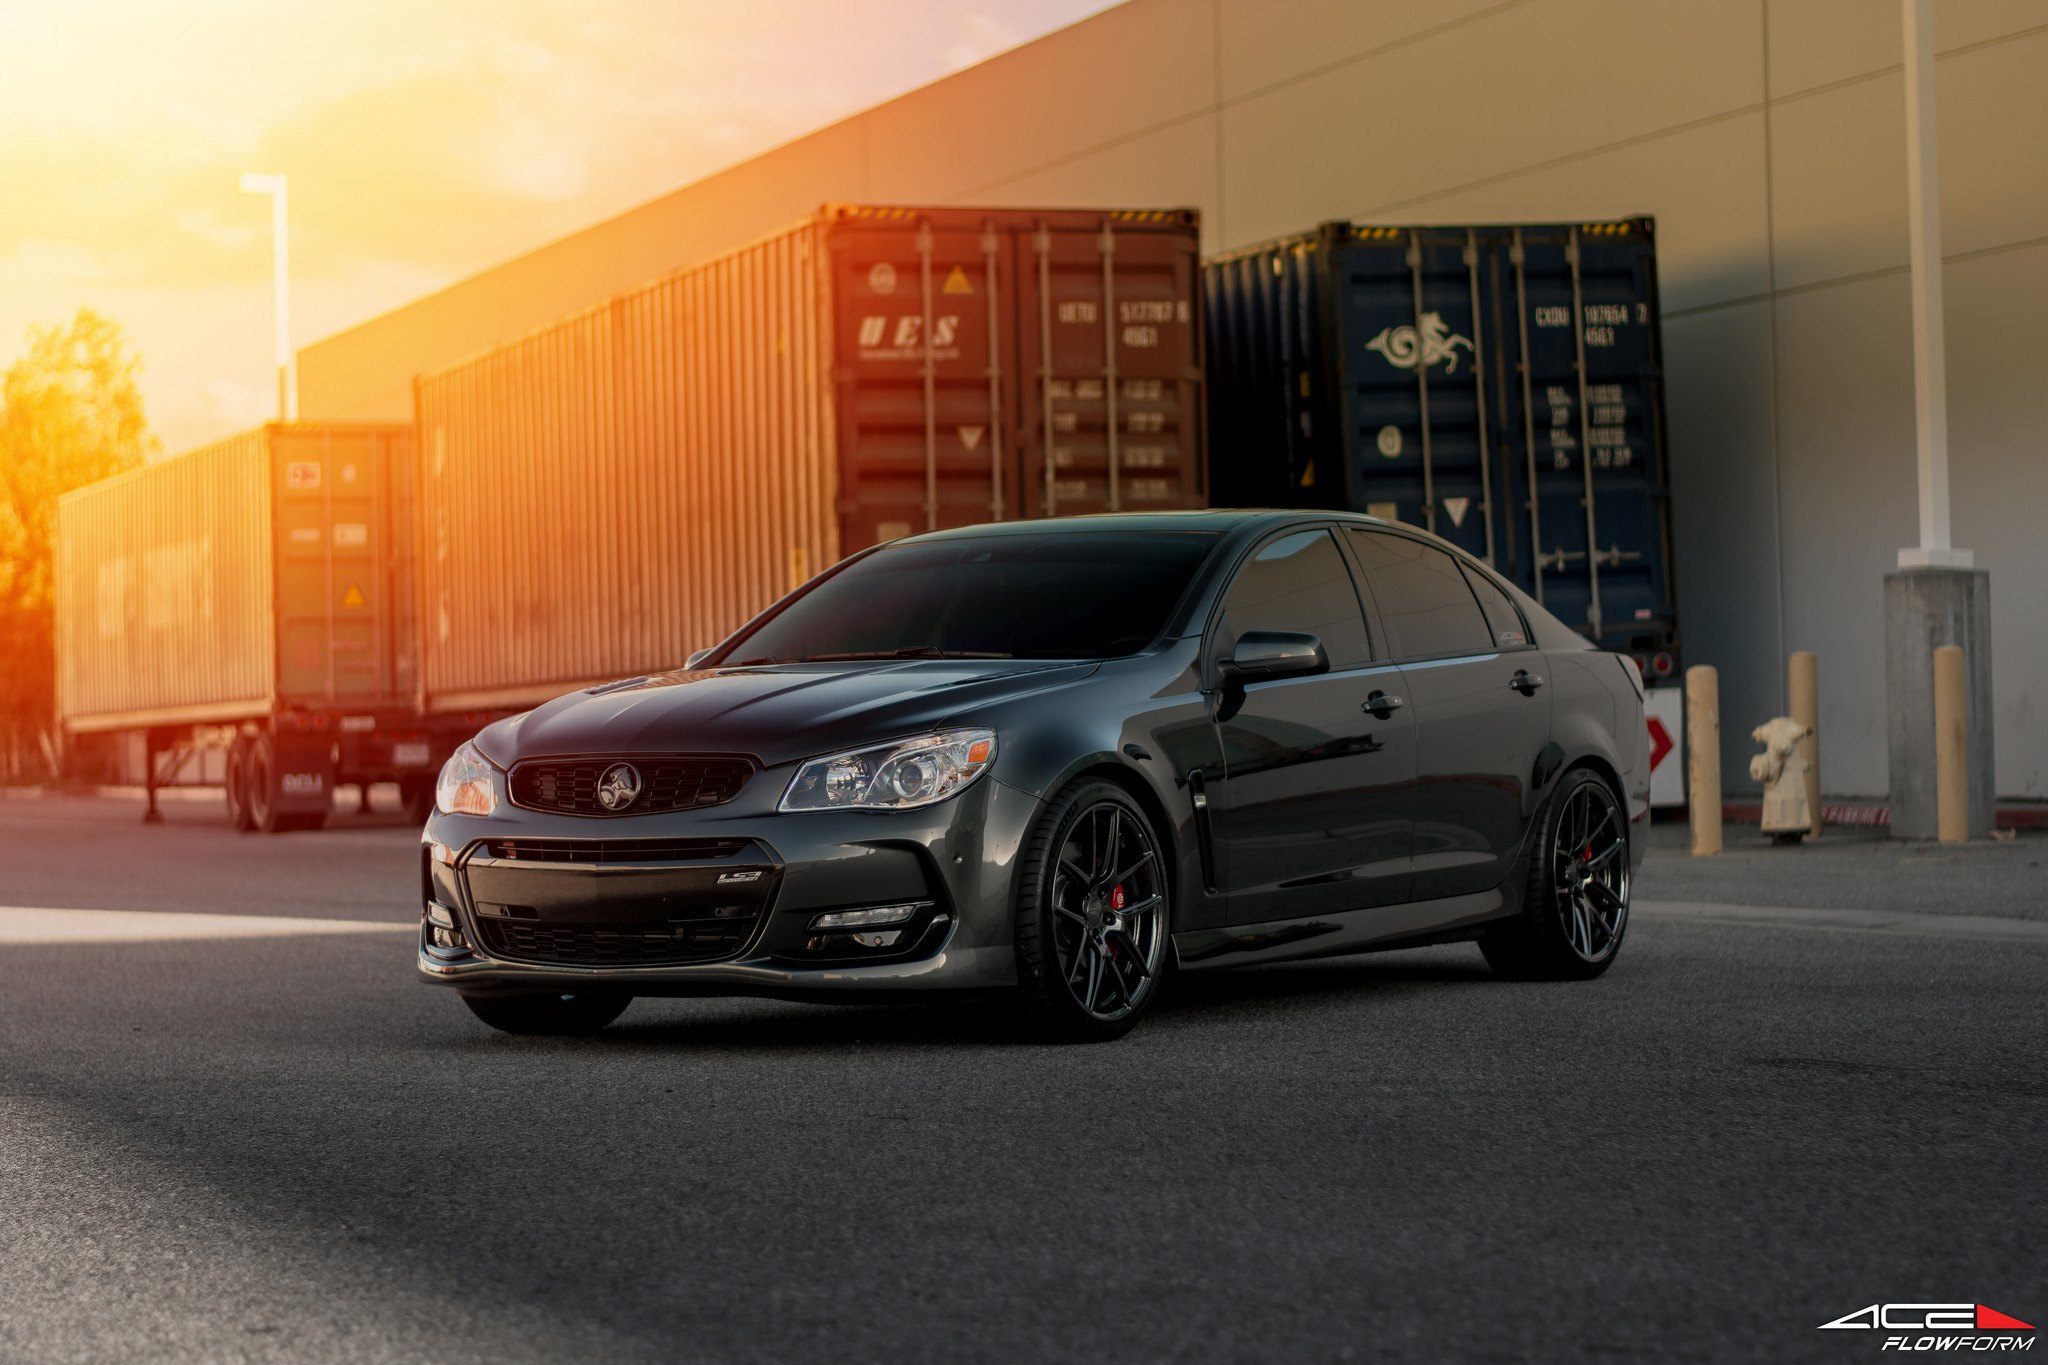 ace alloy flowform wheels give a customized look to gray chevy ss gallery. Black Bedroom Furniture Sets. Home Design Ideas